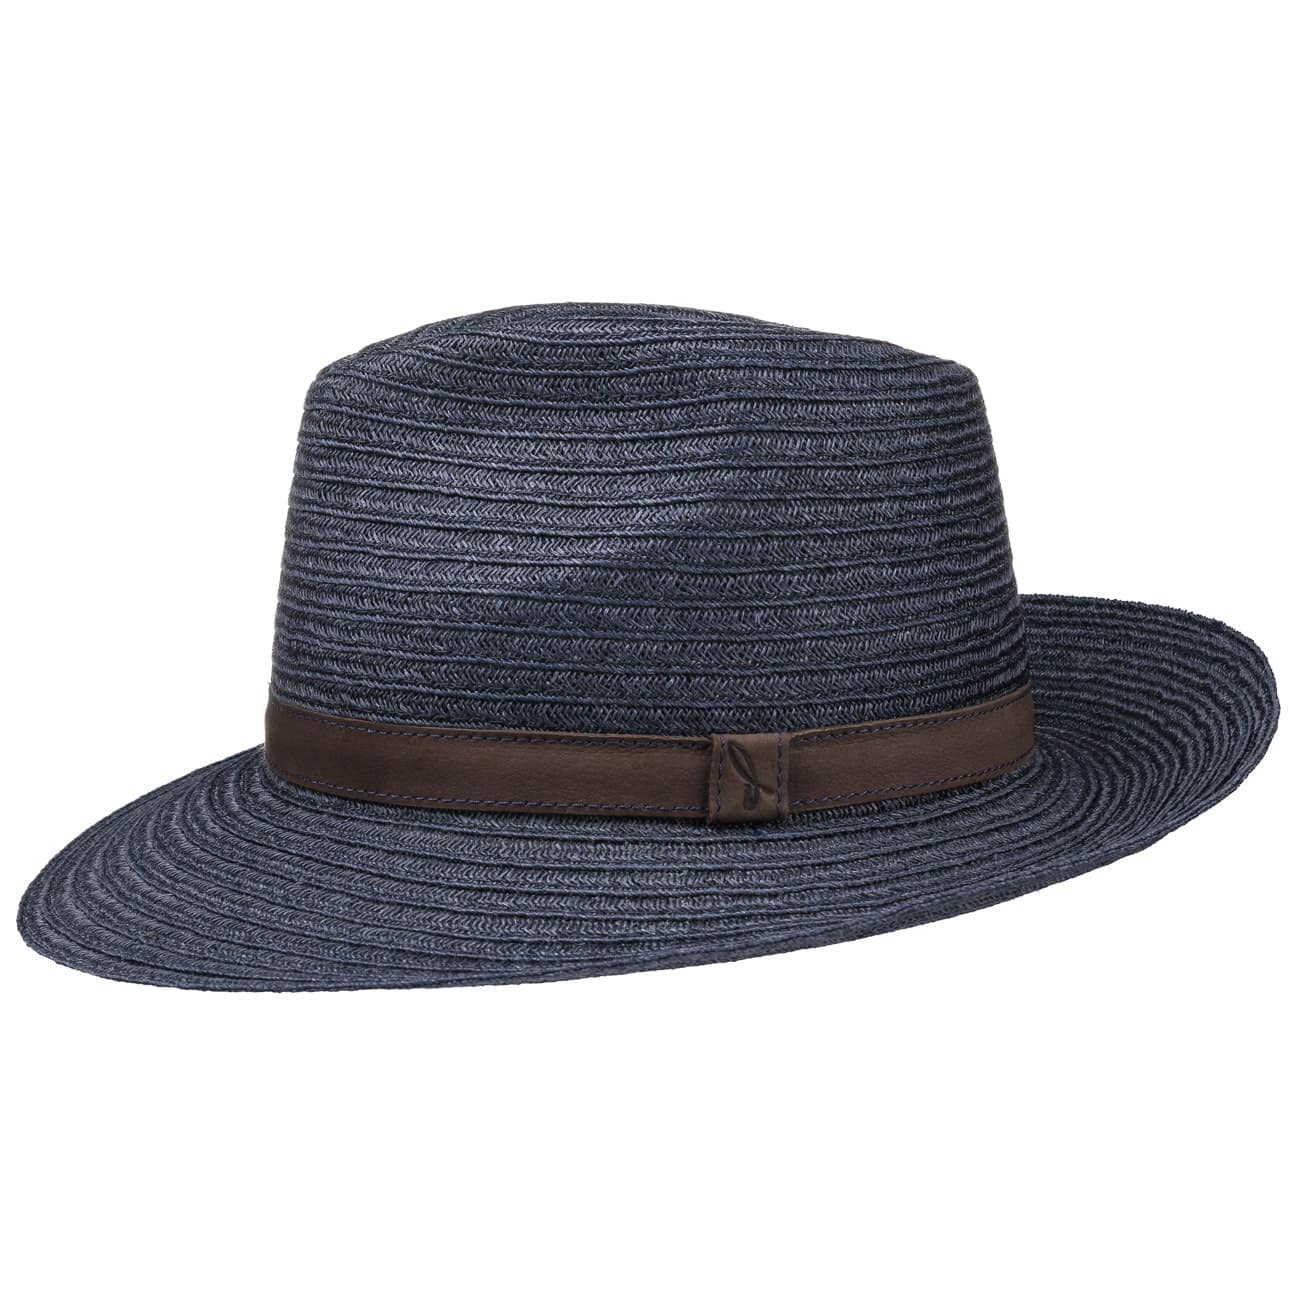 Hemp Summer Hat with Leather Band by Doria, GBP 126,95 ...